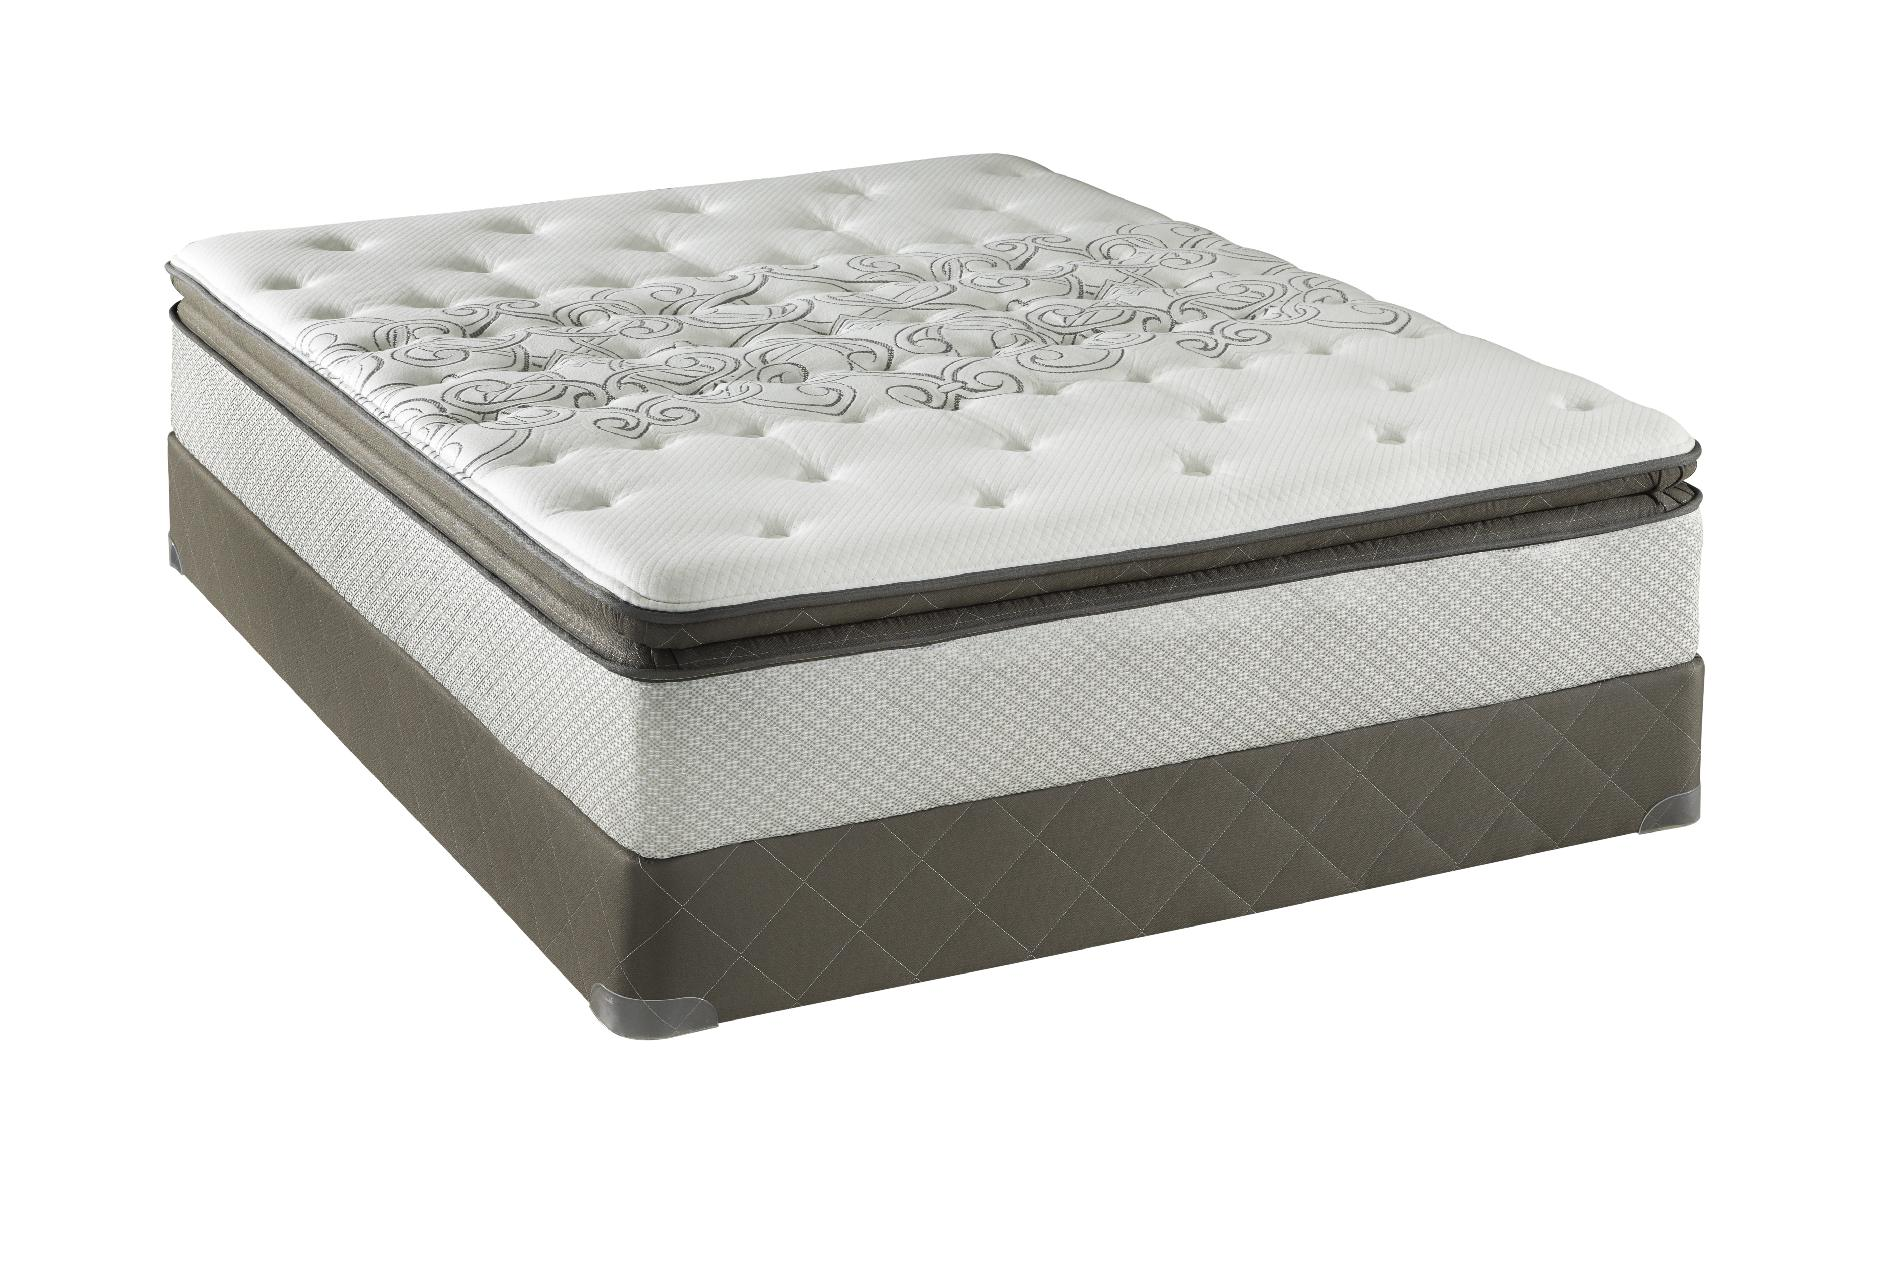 Sealy Posturepedic Cookshire Ti2, Plush Euro Pillowtop, King Mattress Only